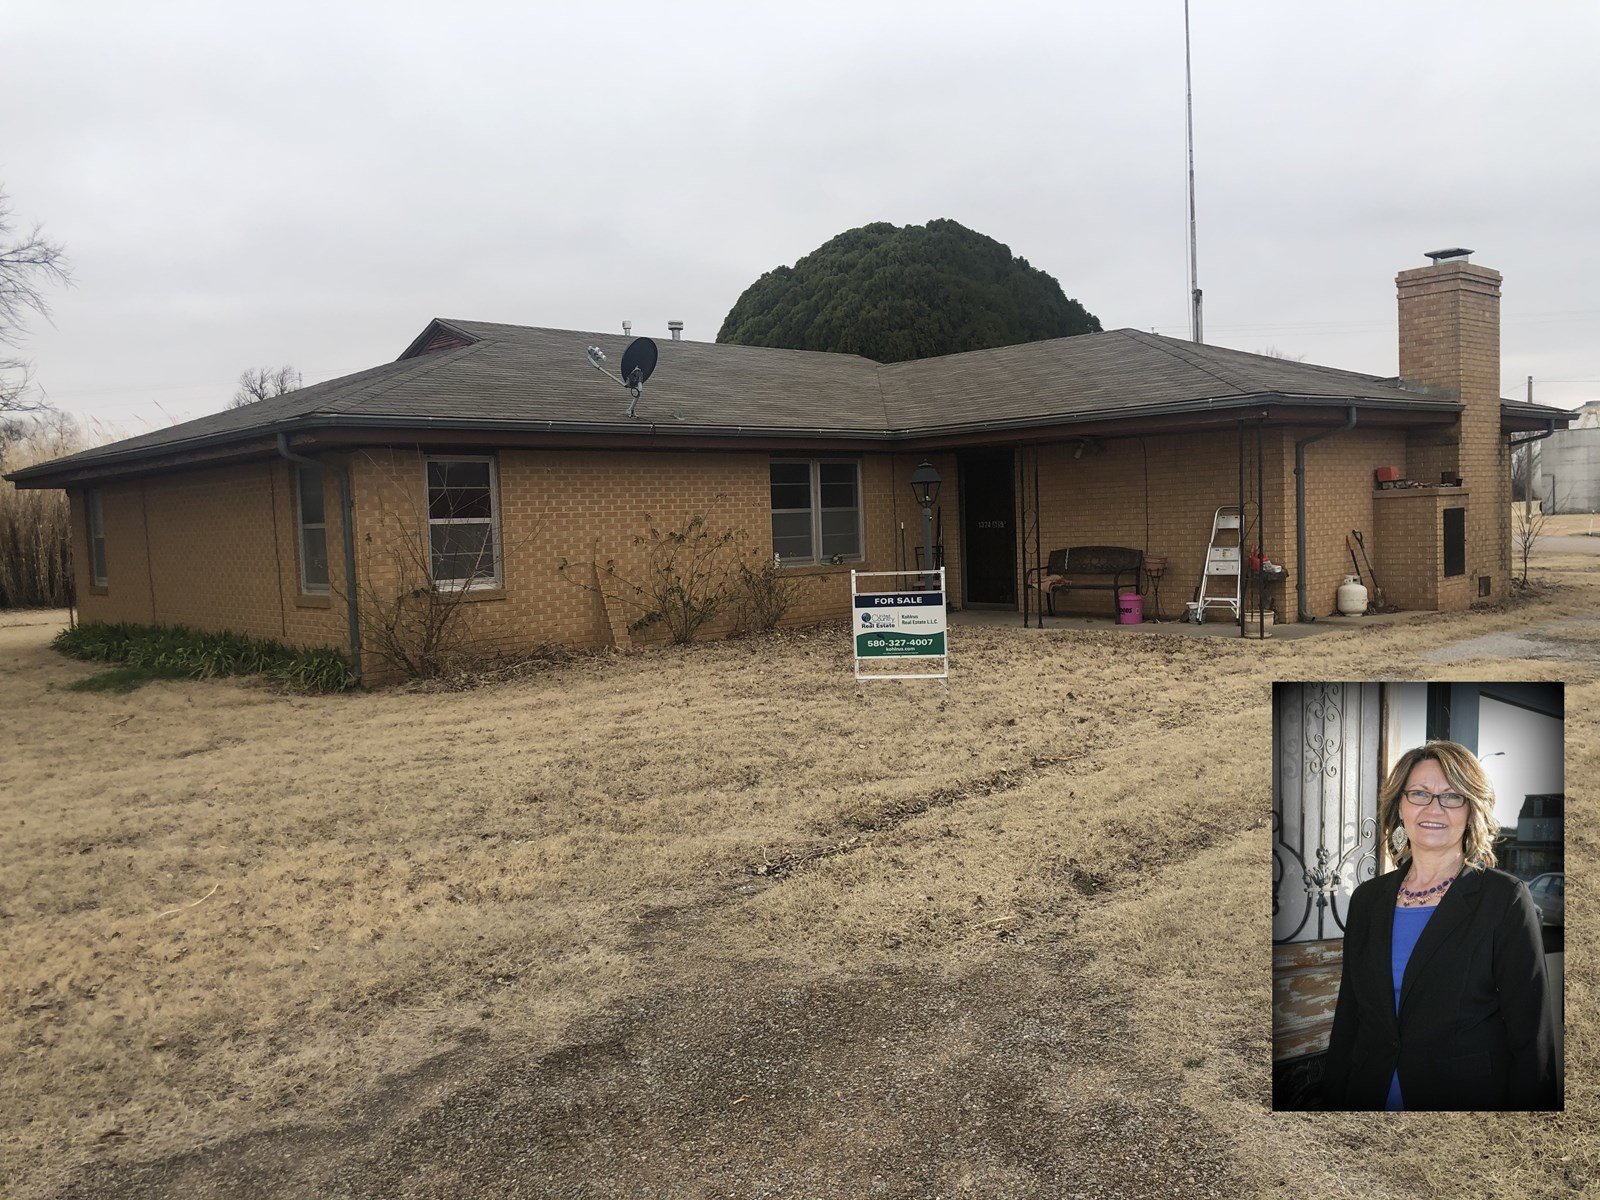 3 Bedroom Home in Dacoma, OK